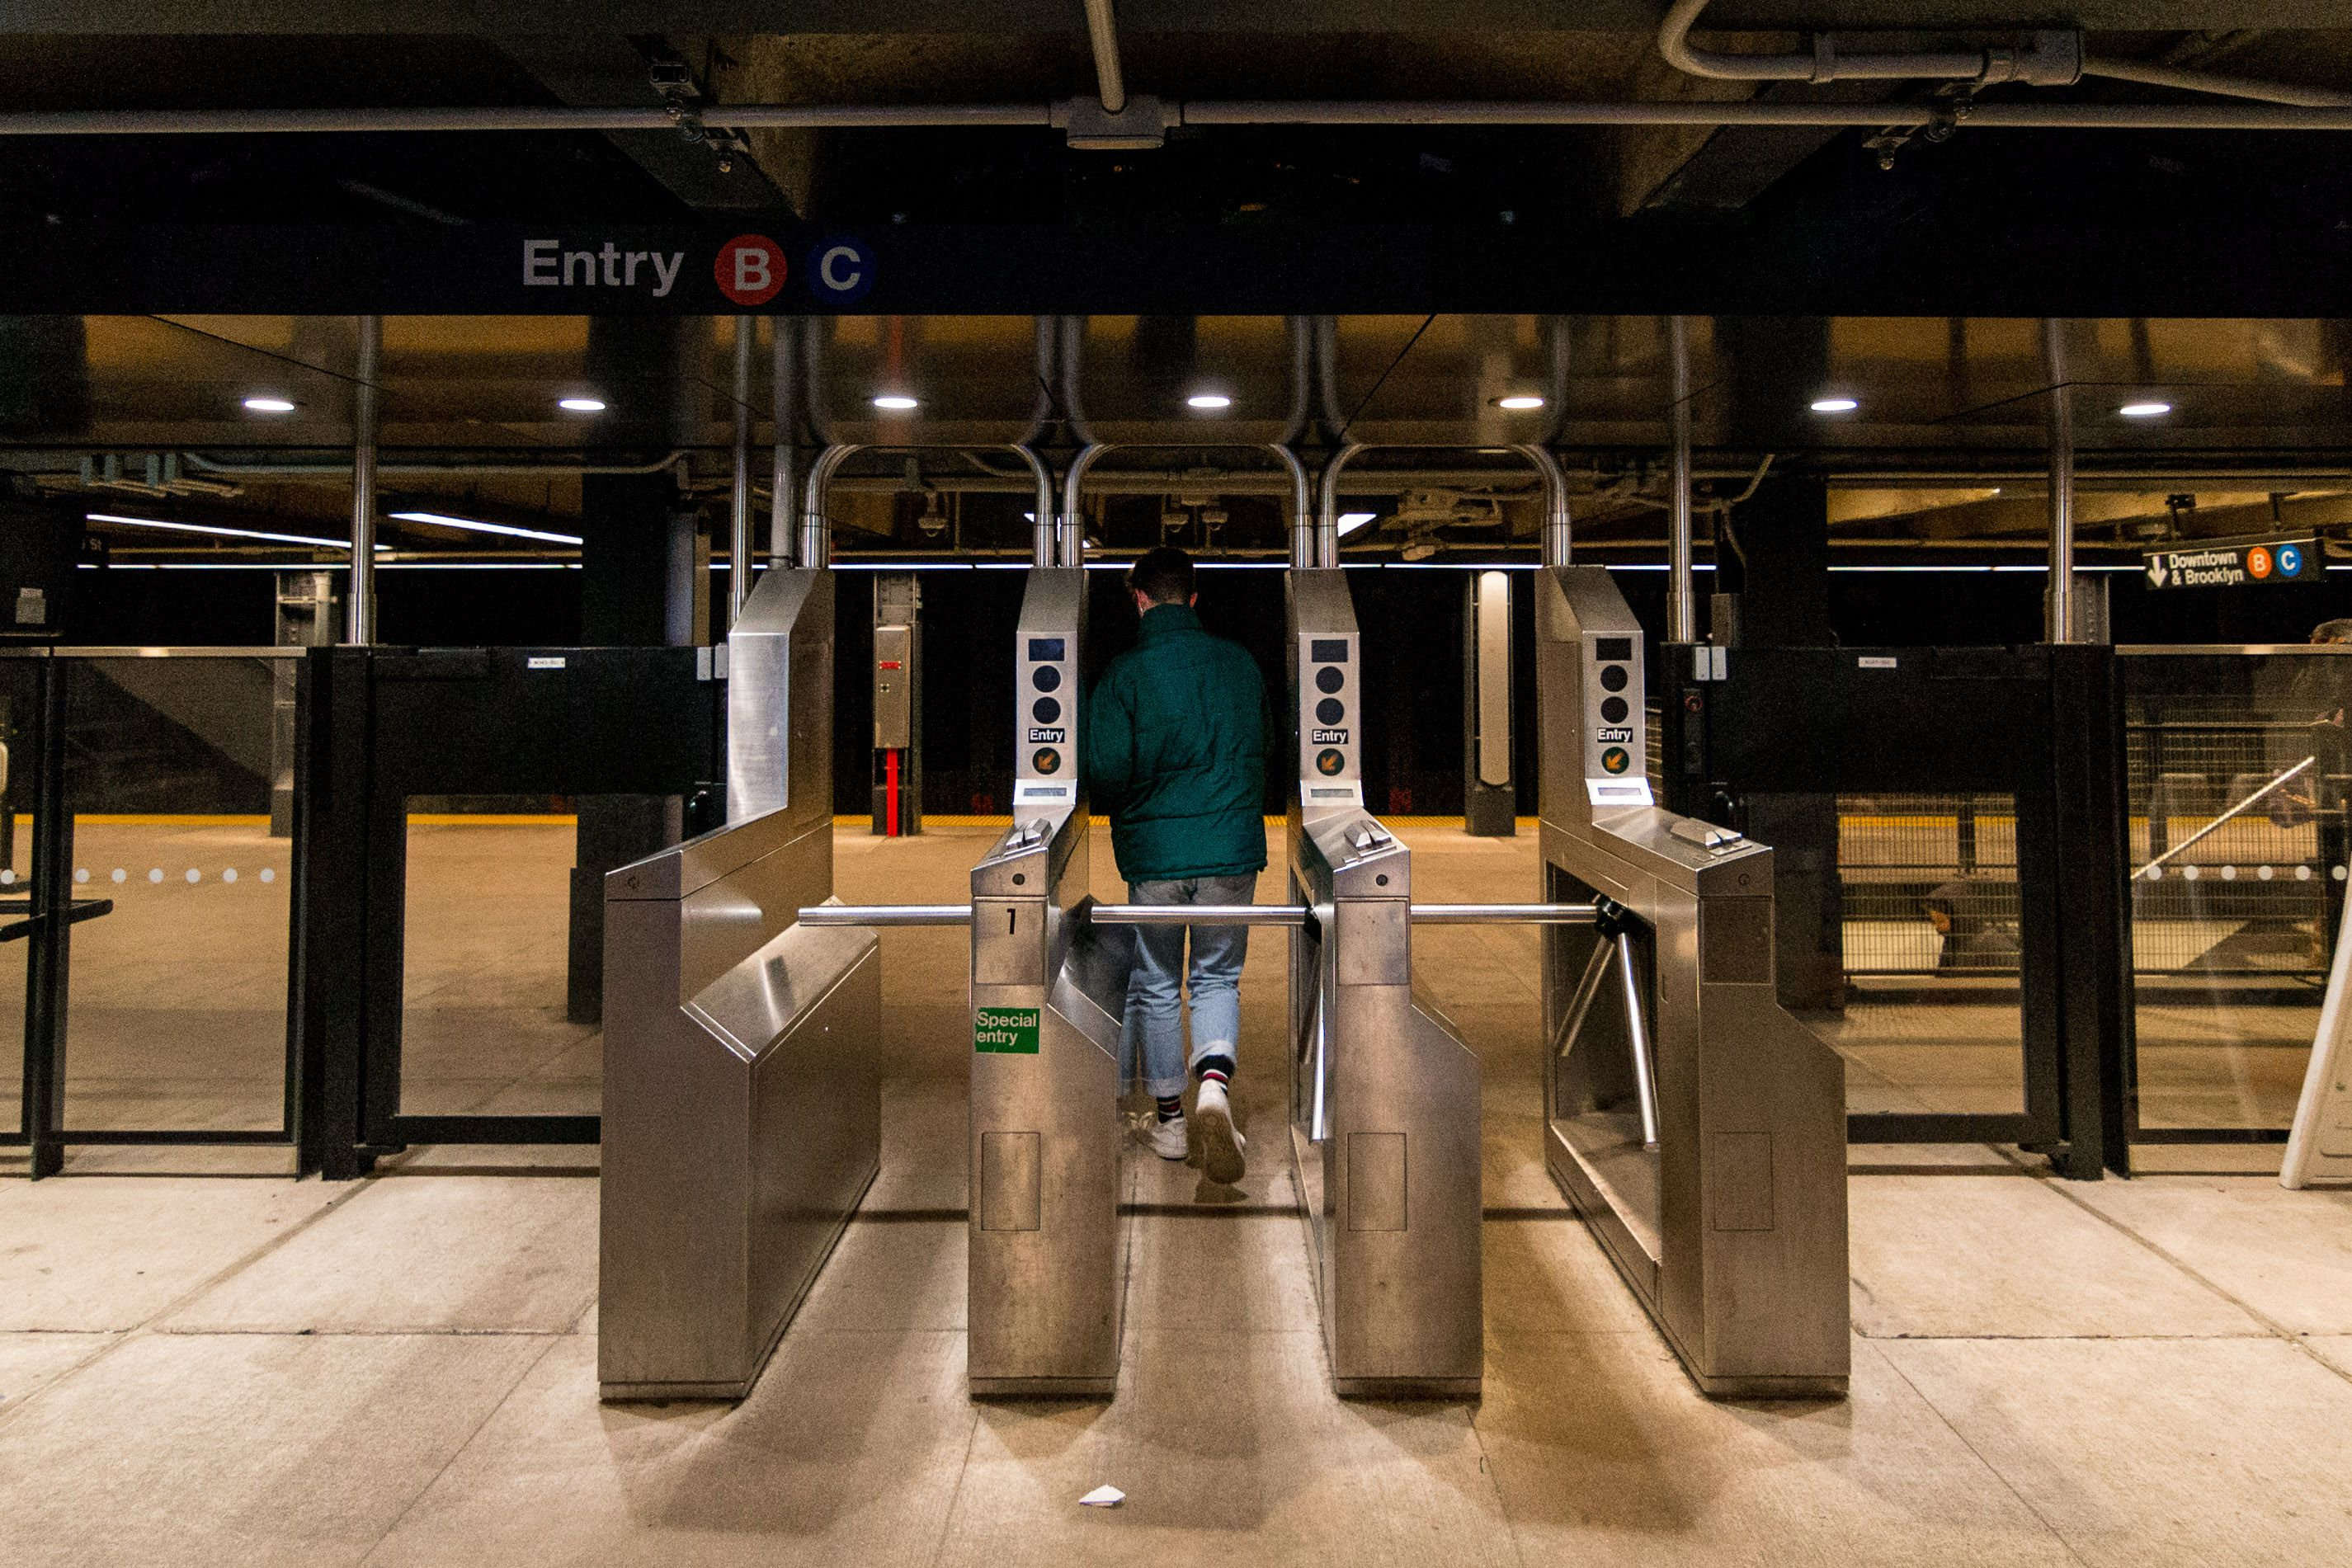 Nyc Subway Map Station Exits.12 Tips For Riding The New York City Subway